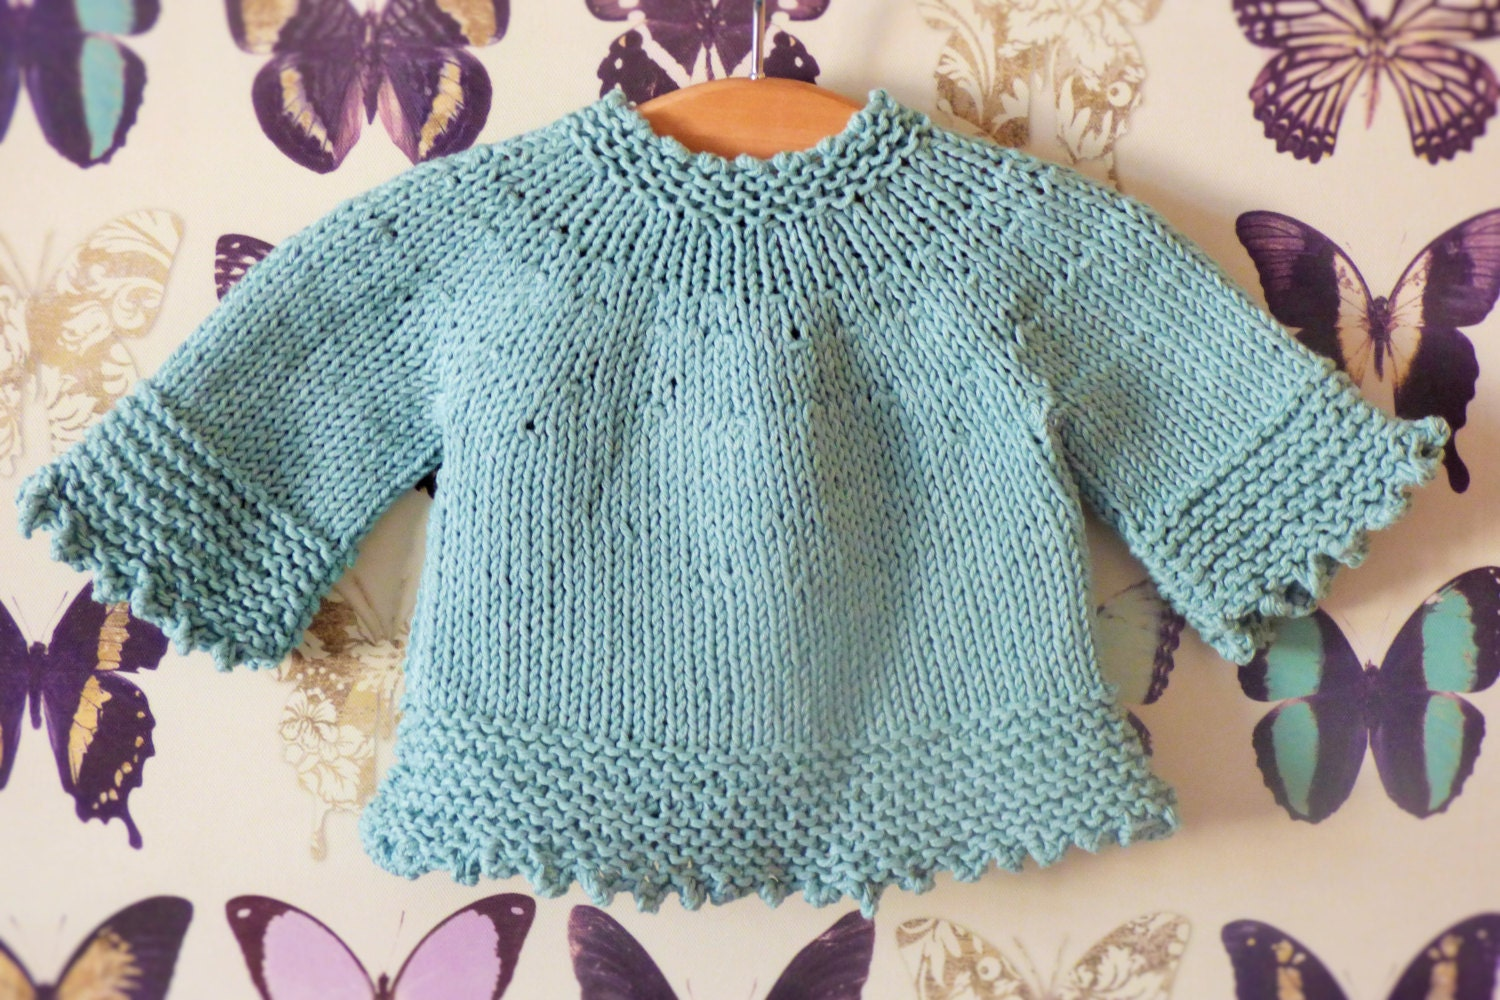 Knitting Pattern For Tunic Jumper : Knitting Pattern Tunic Sweater Tilly a Seamless Top Down